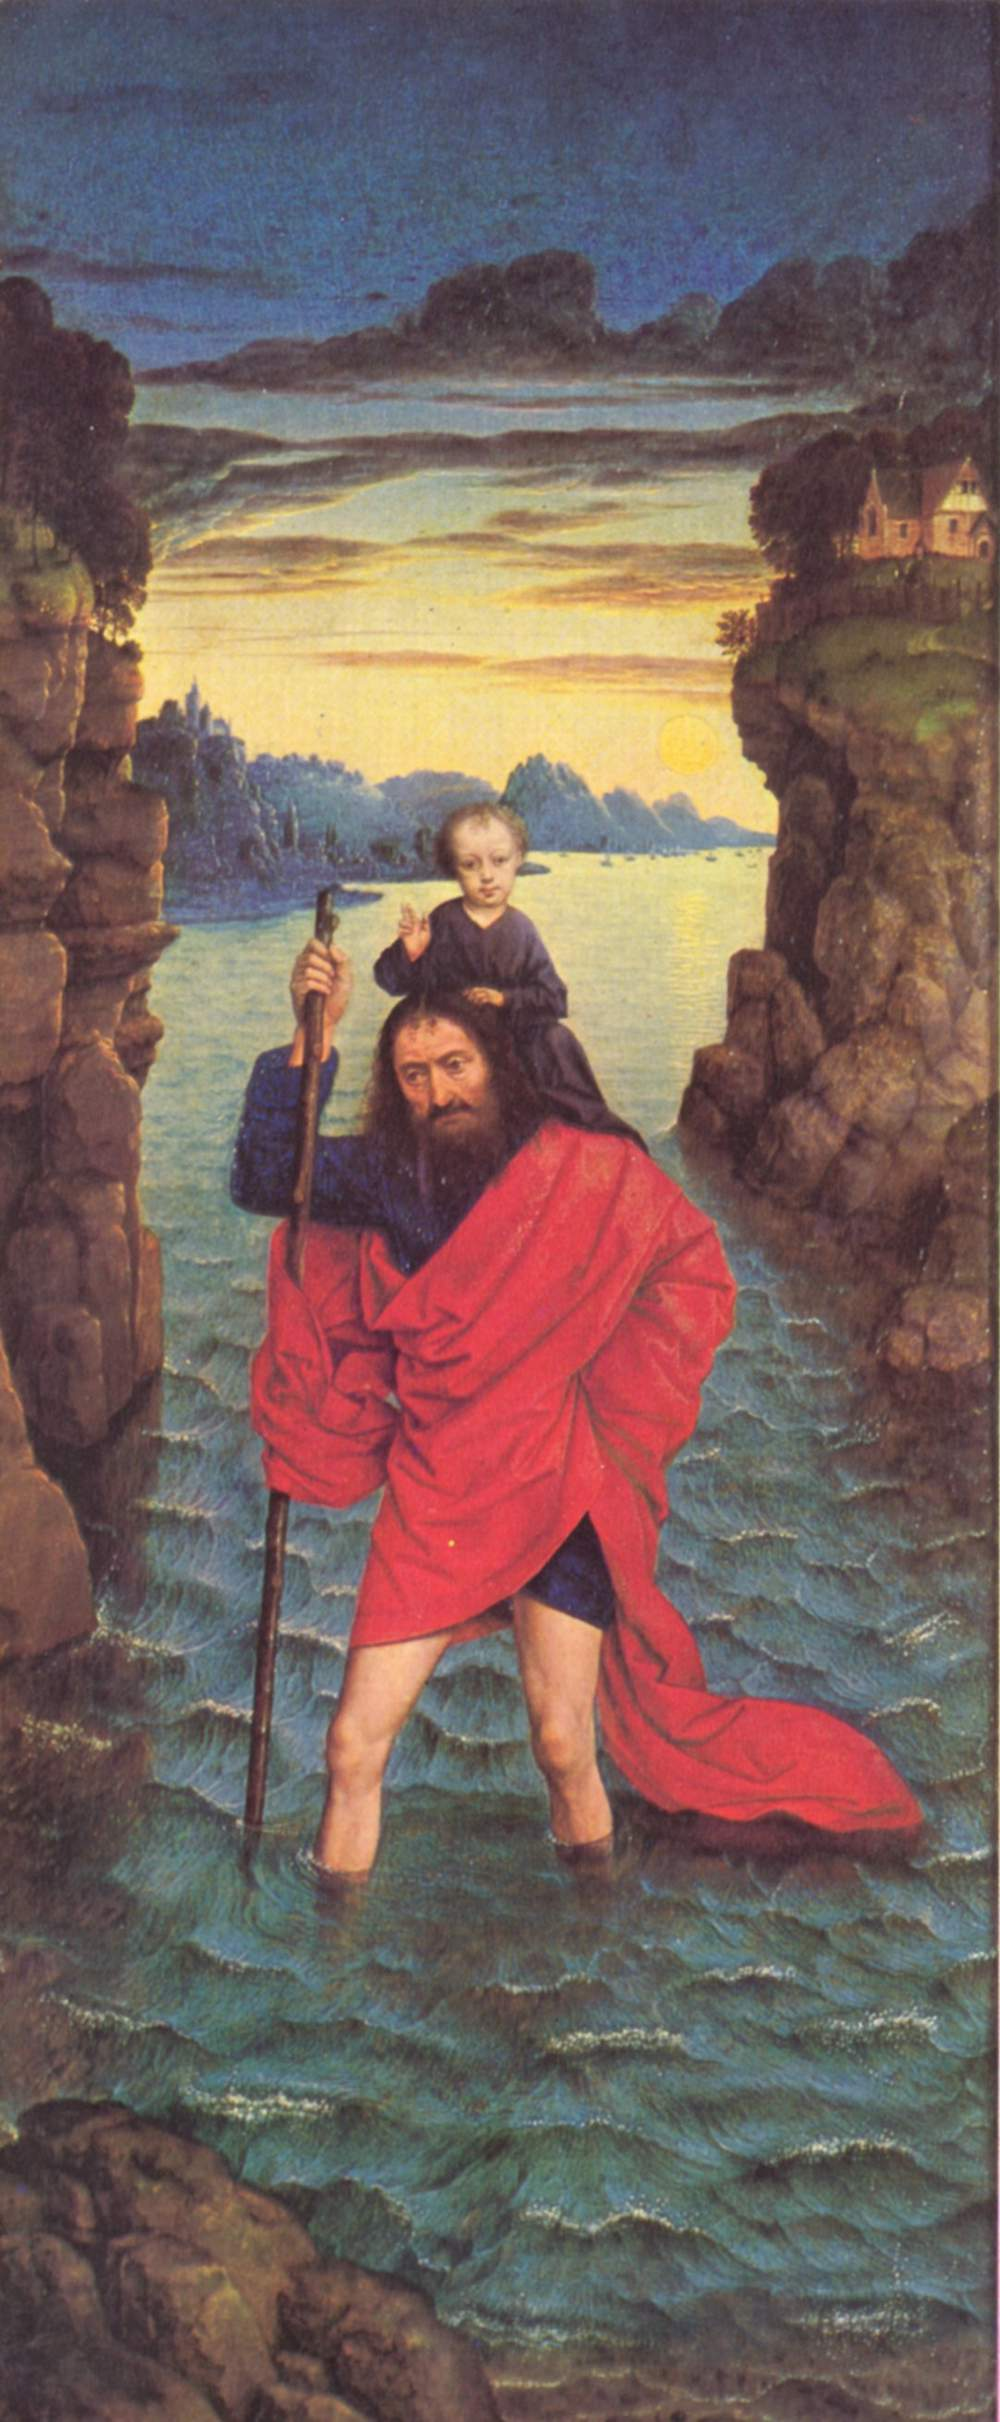 The right wing of The Pearl of Brabant: Saint Christopher, 1468